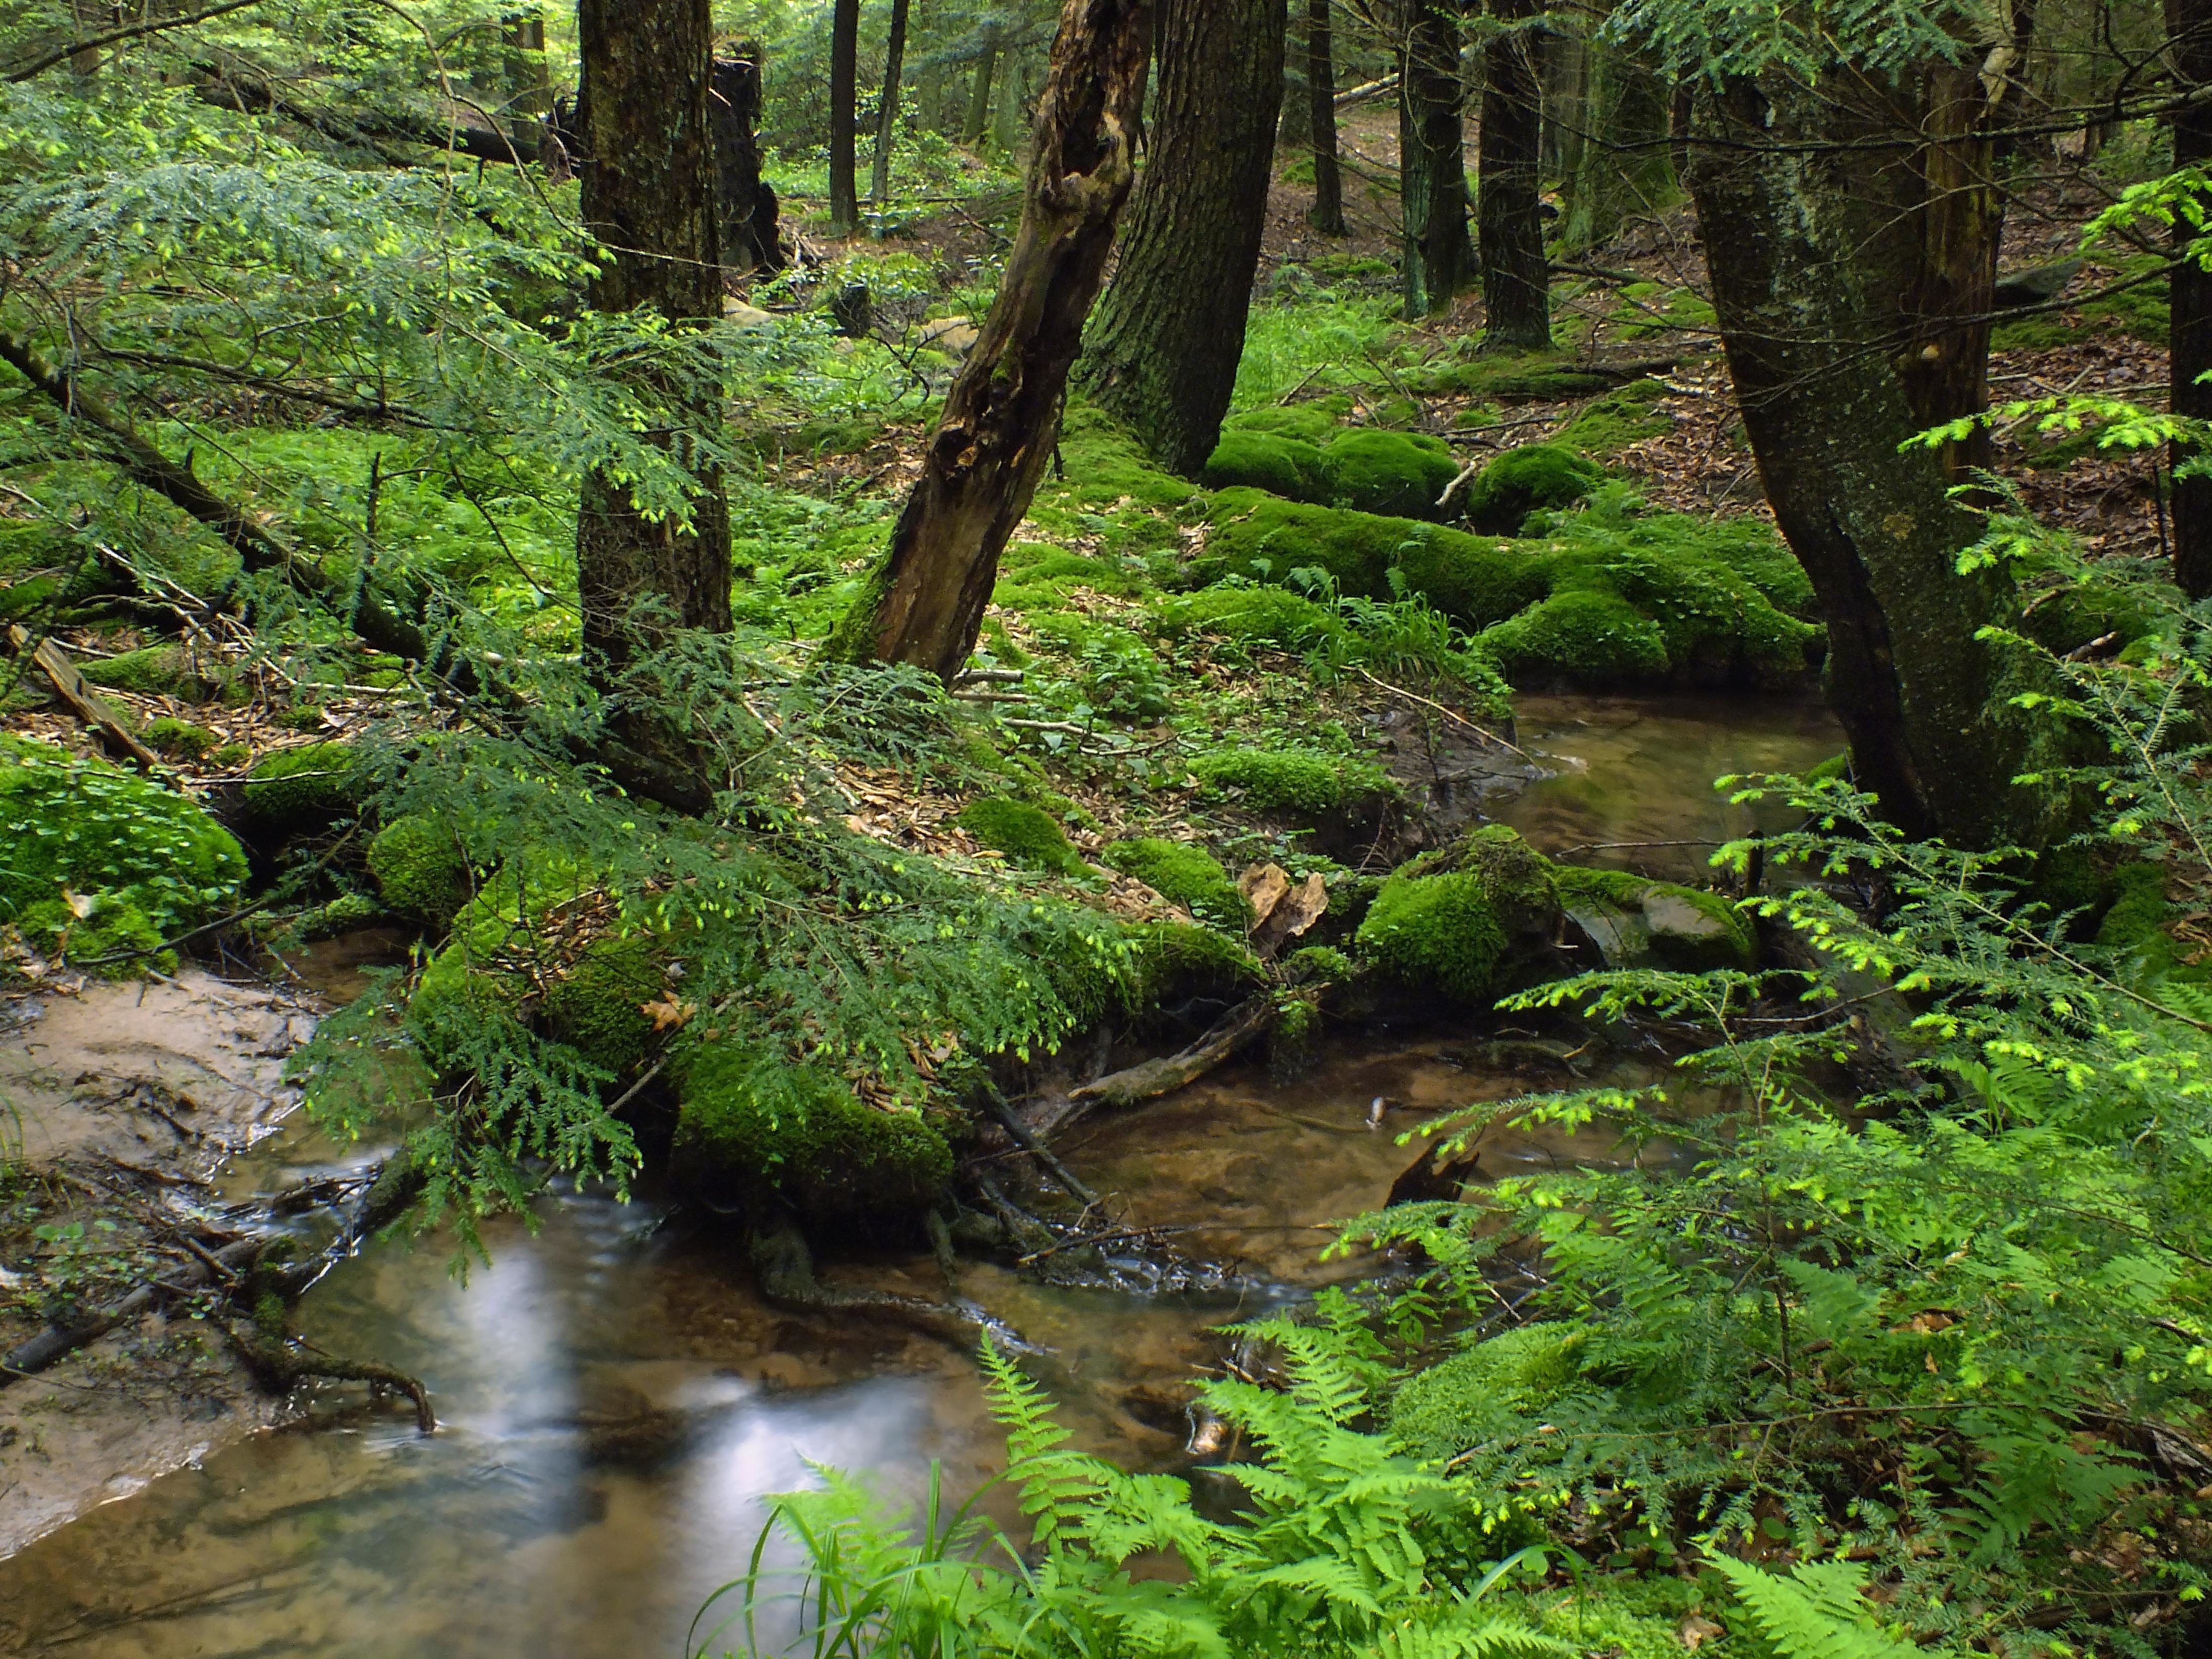 Free picture: wood, nature, water, forest, landscape, moss ...